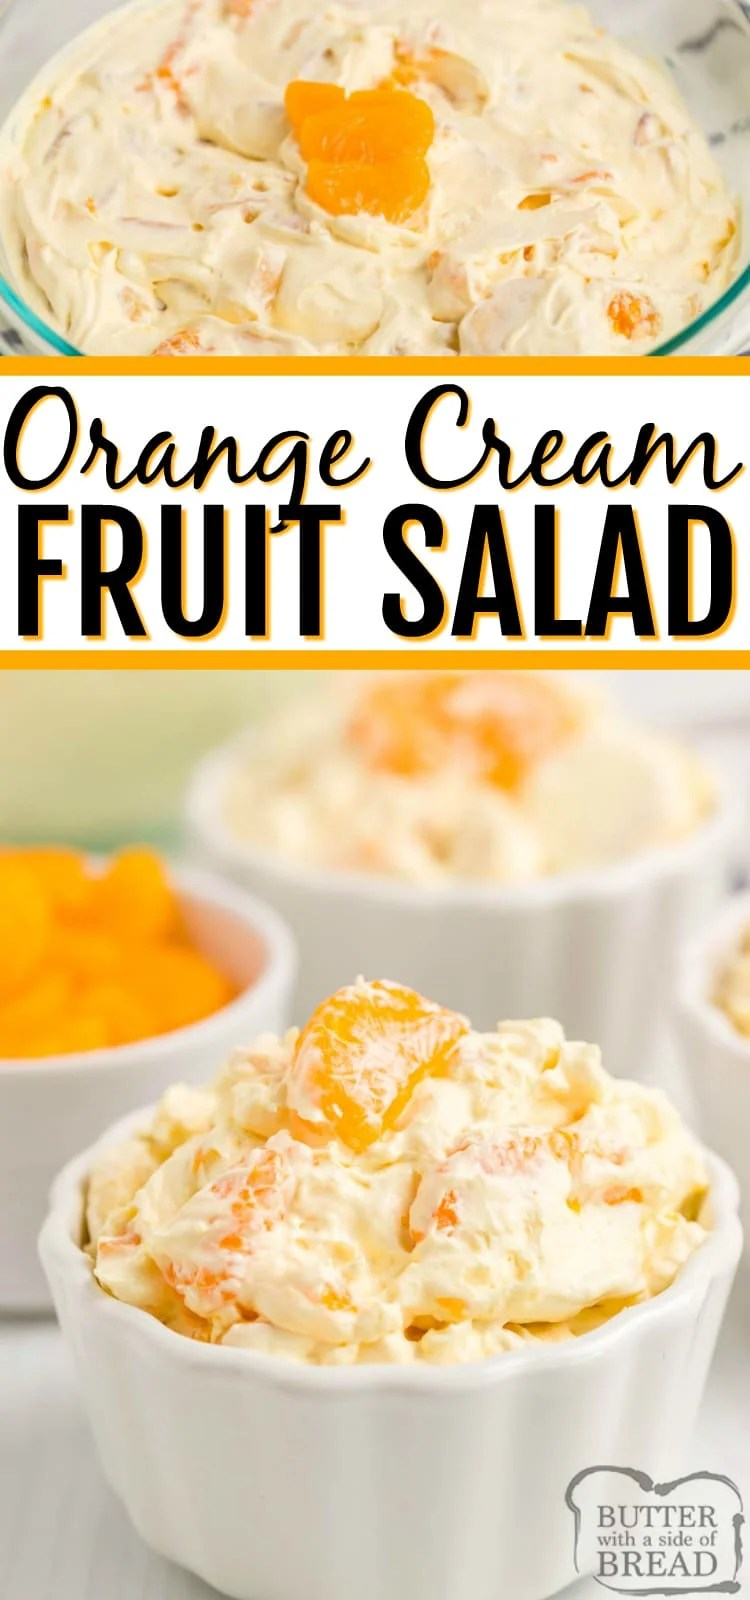 Orange Cream Fruit Salad is a delicious fruit salad filled with oranges, pineapple and bananas with a sweet orange cream mixed in! Perfect fruit salad recipe to go alongside holiday dinner.